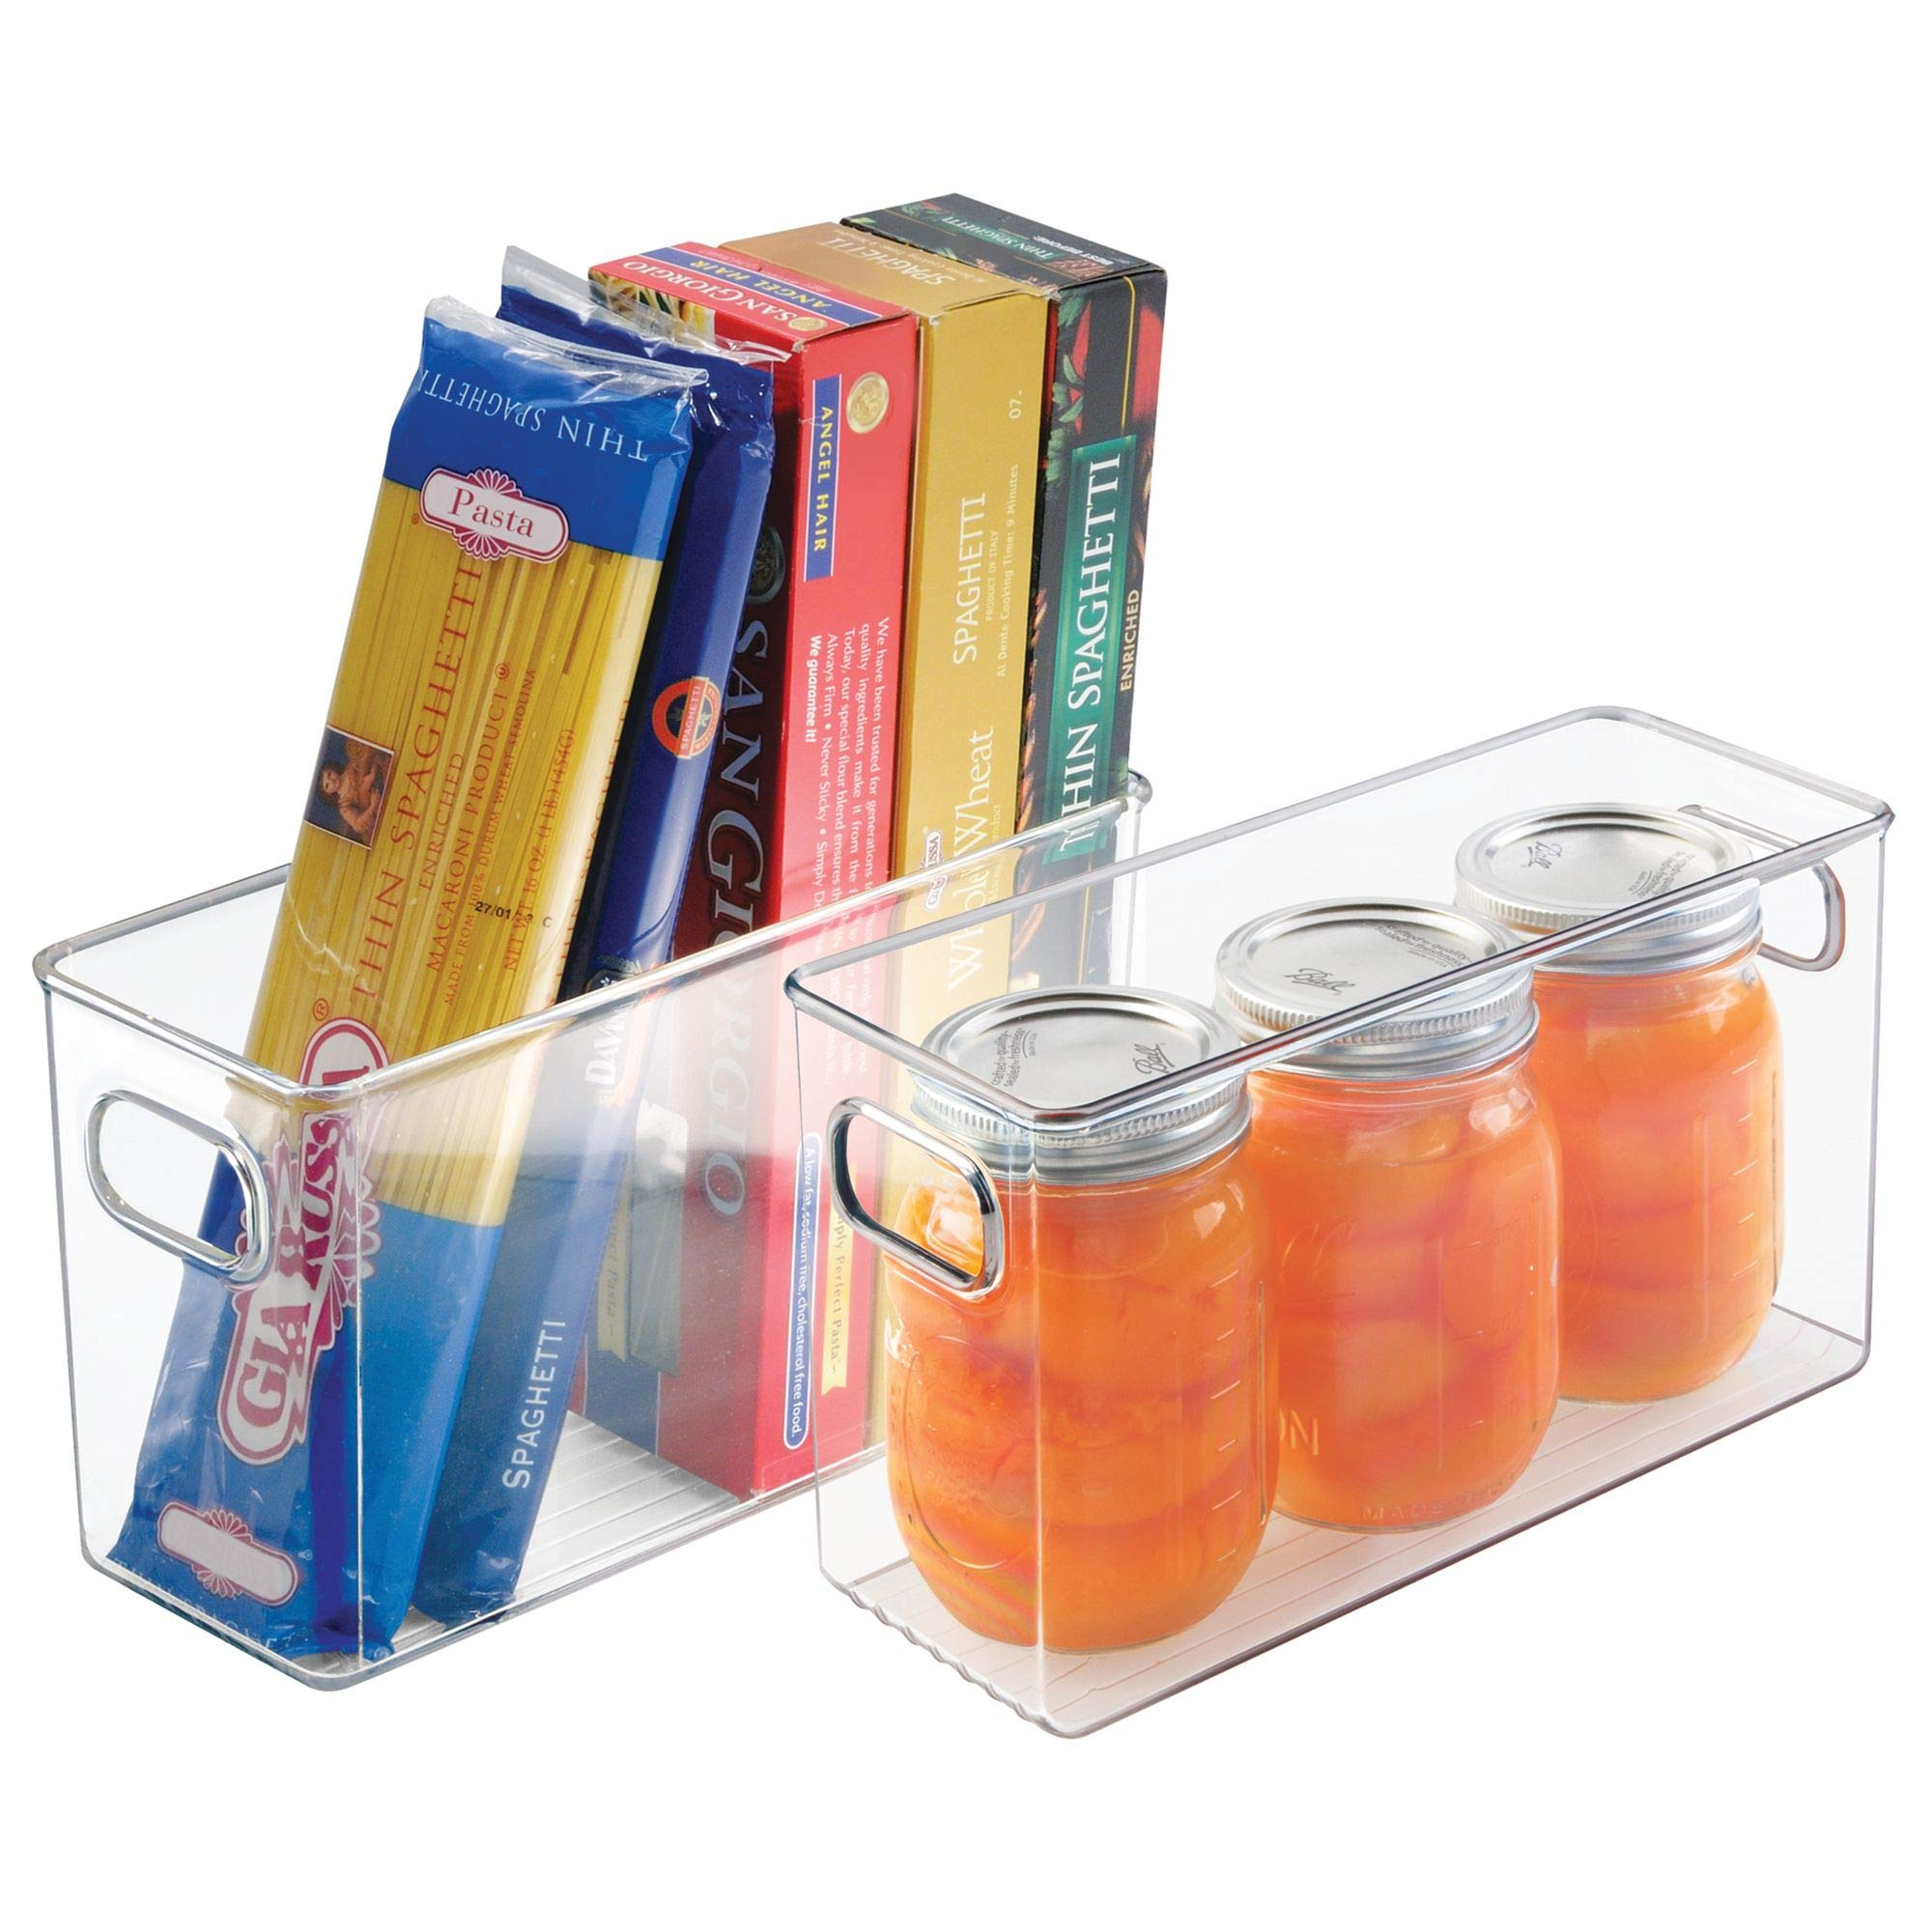 mDesign Refrigerator, Freezer, Pantry Cabinet Organizer Bins for Kitchen, 10'' x 4'' x 6'', Pack of 2, Clear